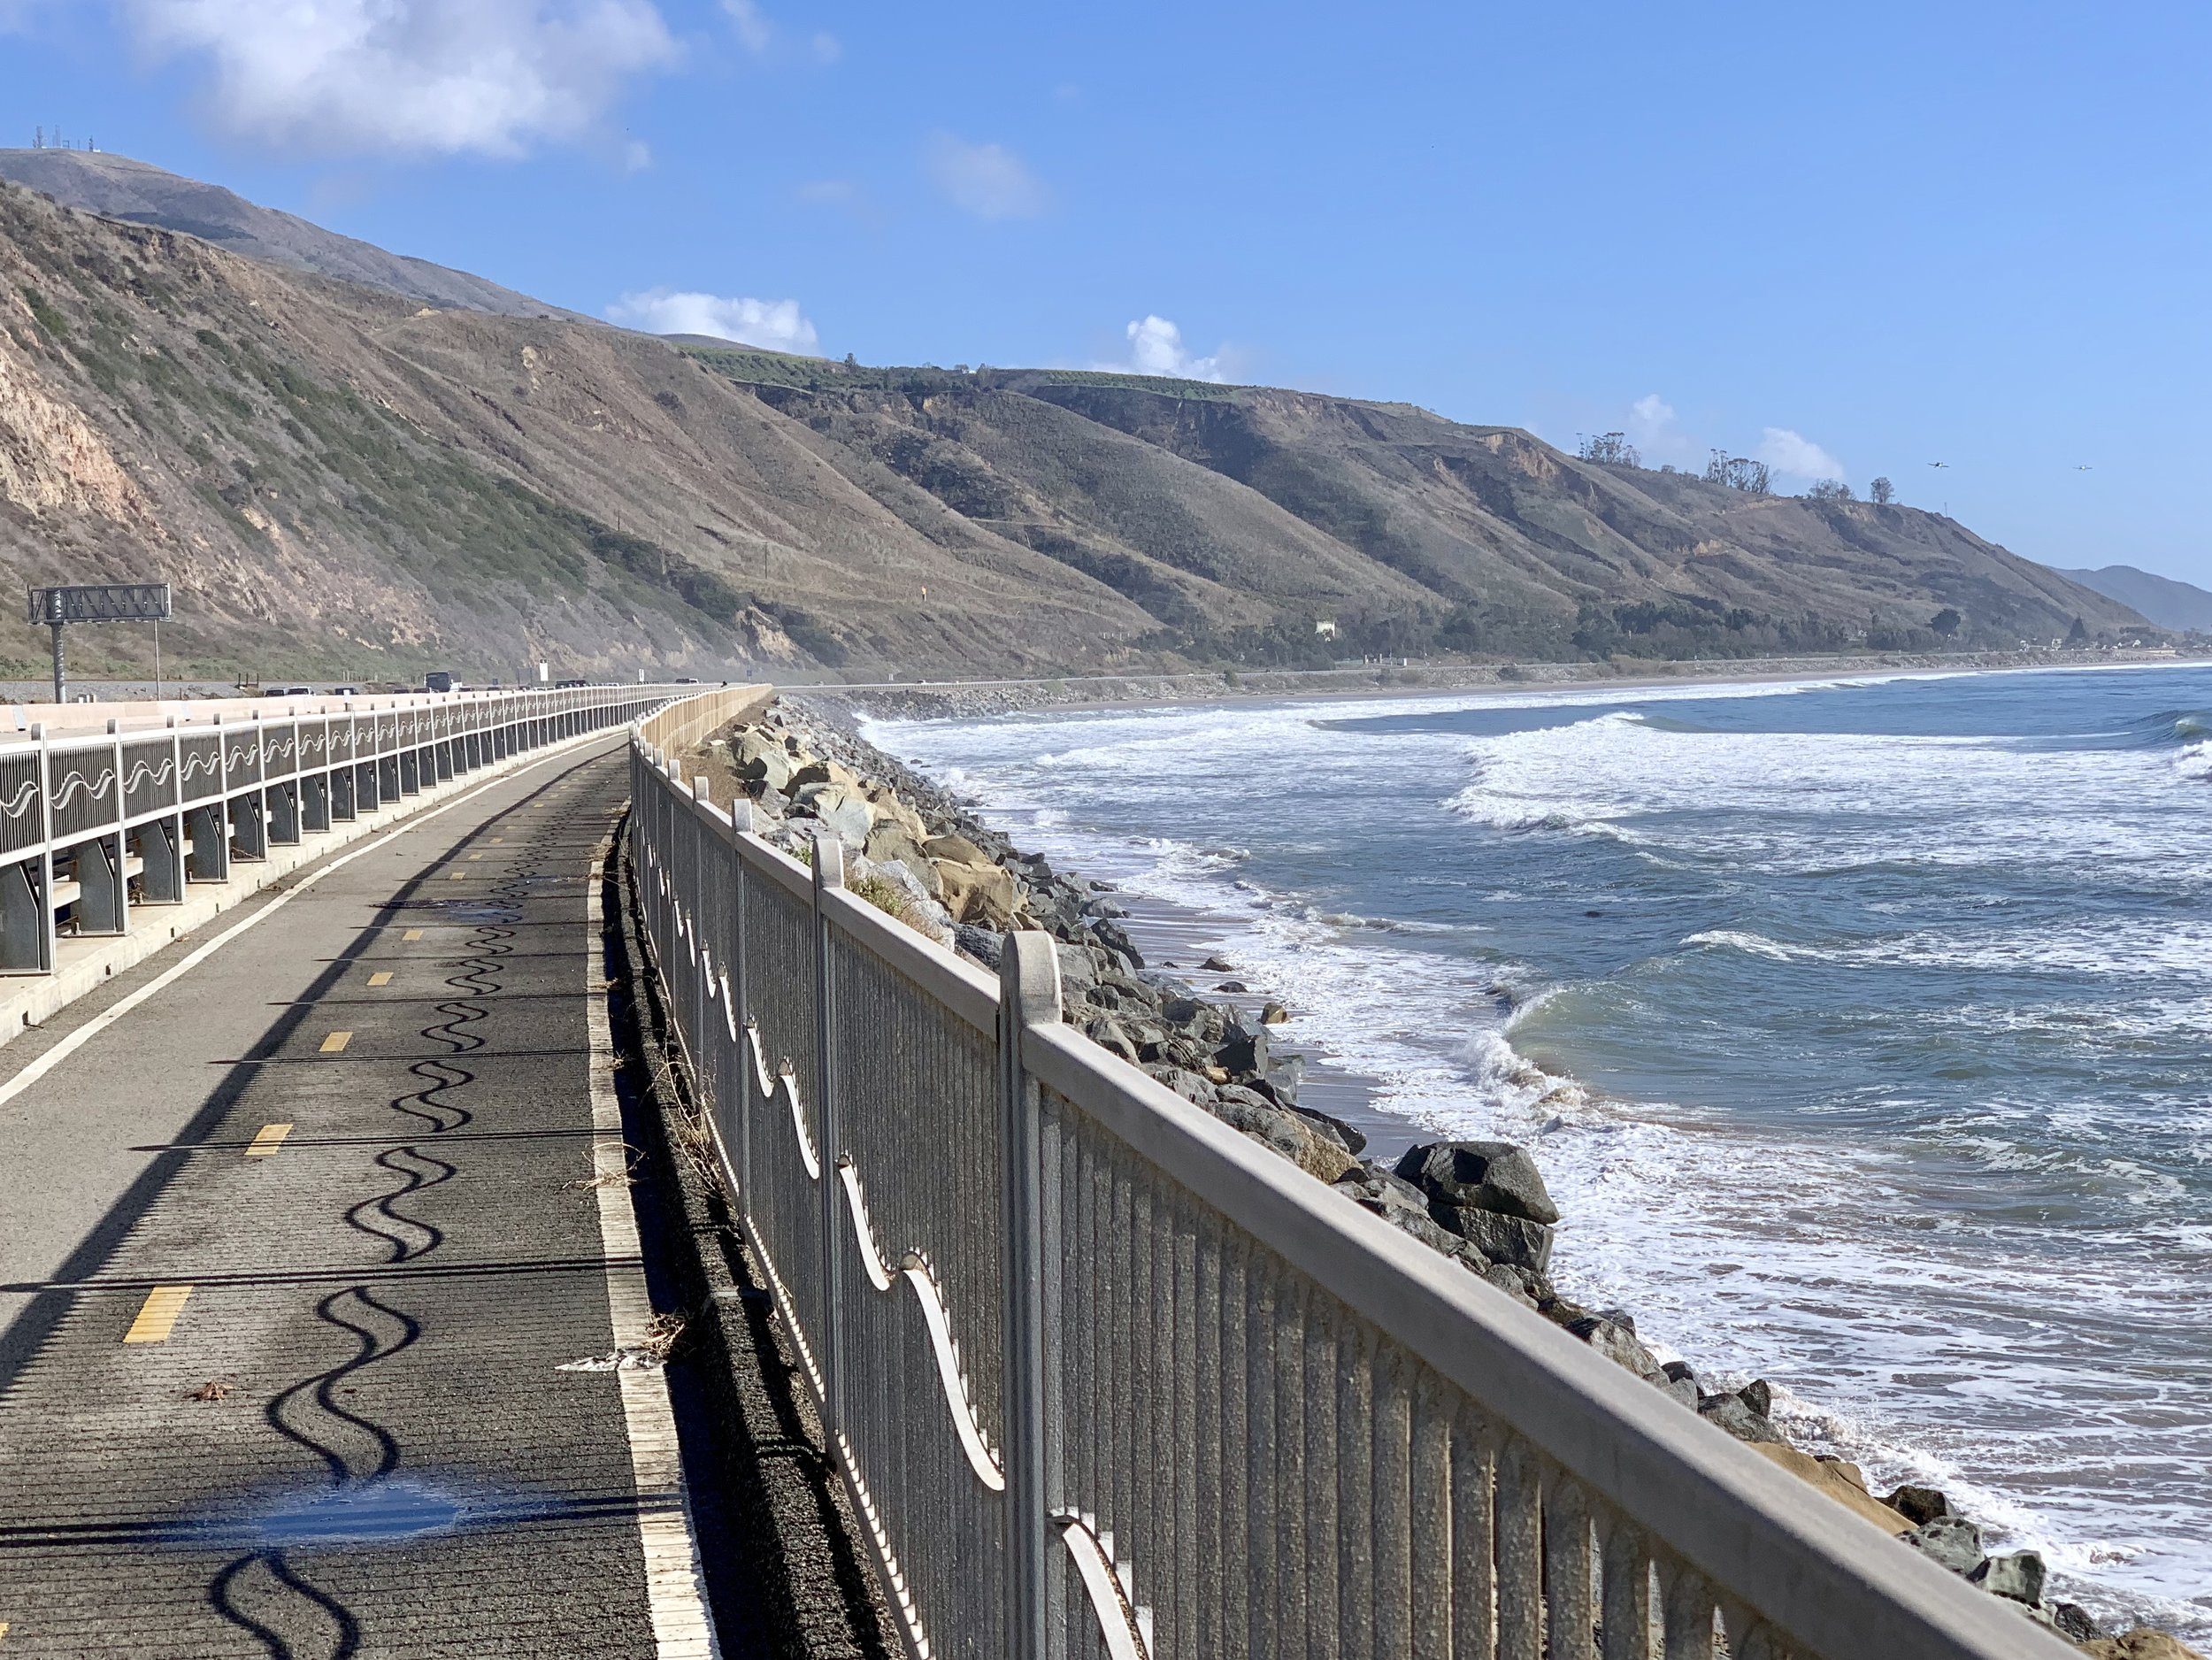 A stretch of cycling path along CA Highway 101.